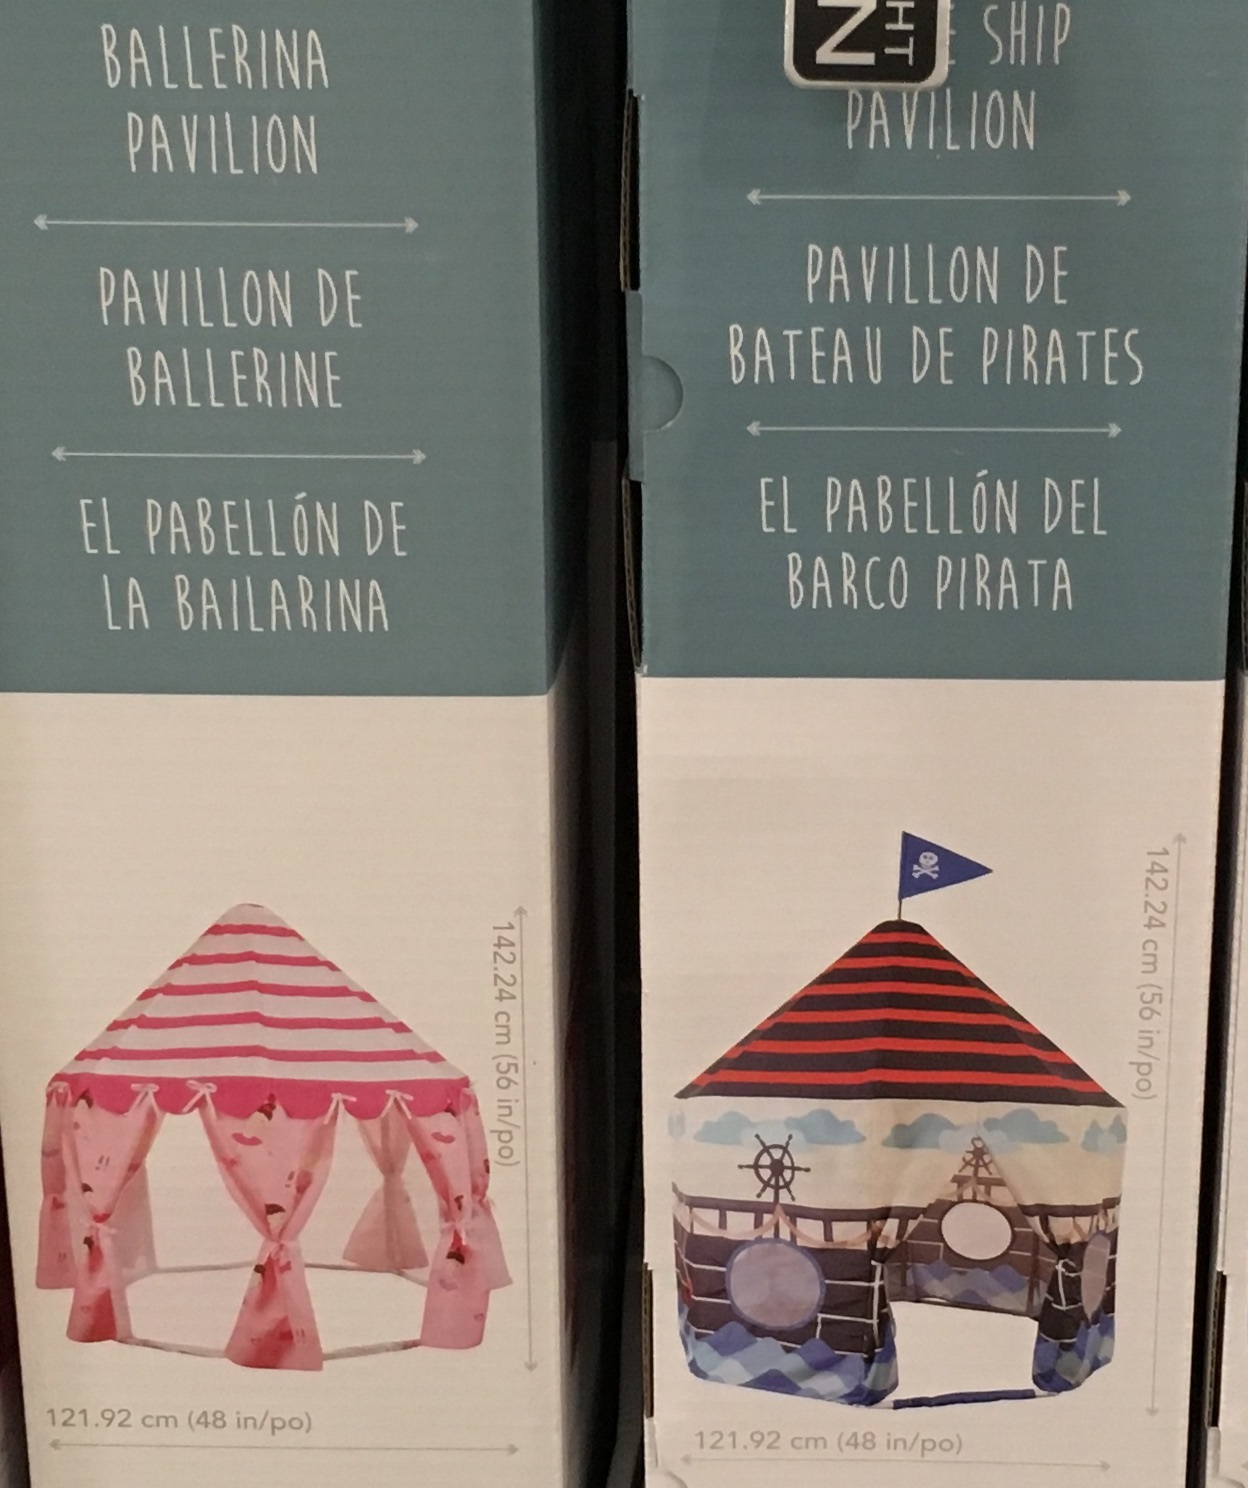 Pacific Play Tents u2013 Pirate Ship Pavilion or Ballerina Pavilion & Pacific Play Tents | Costco Weekender